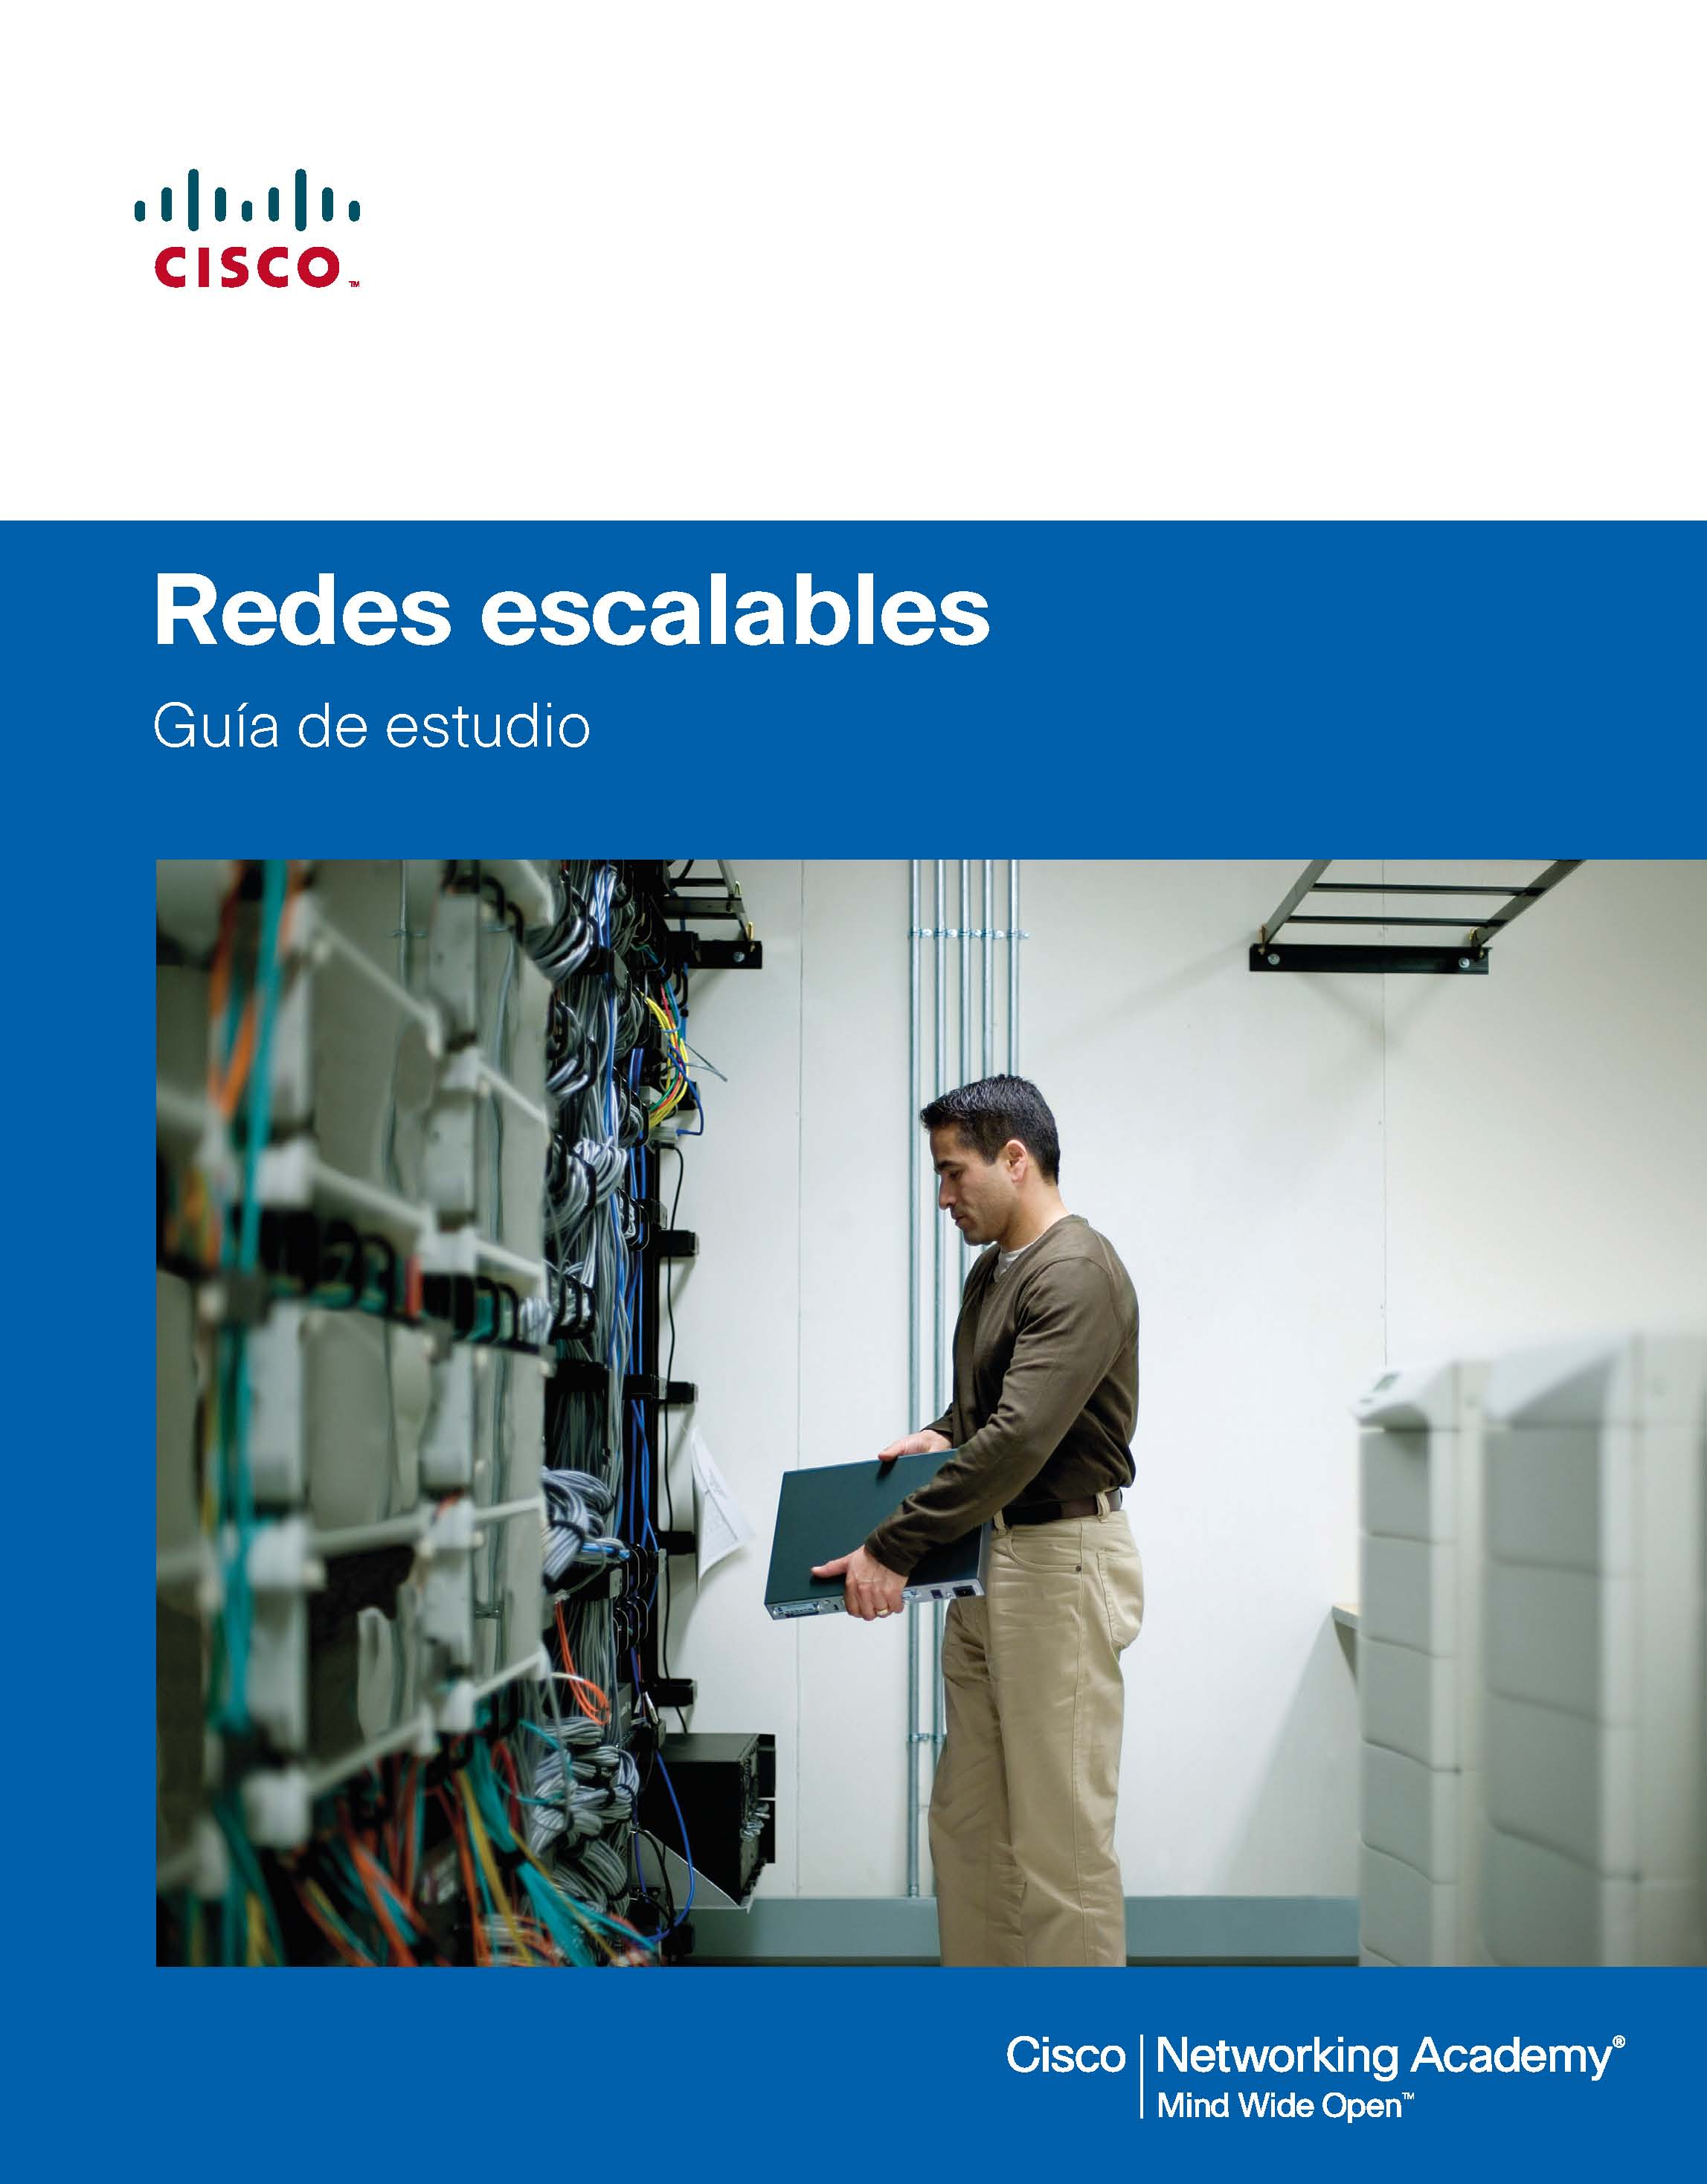 Libro Cisco Redes Escalables